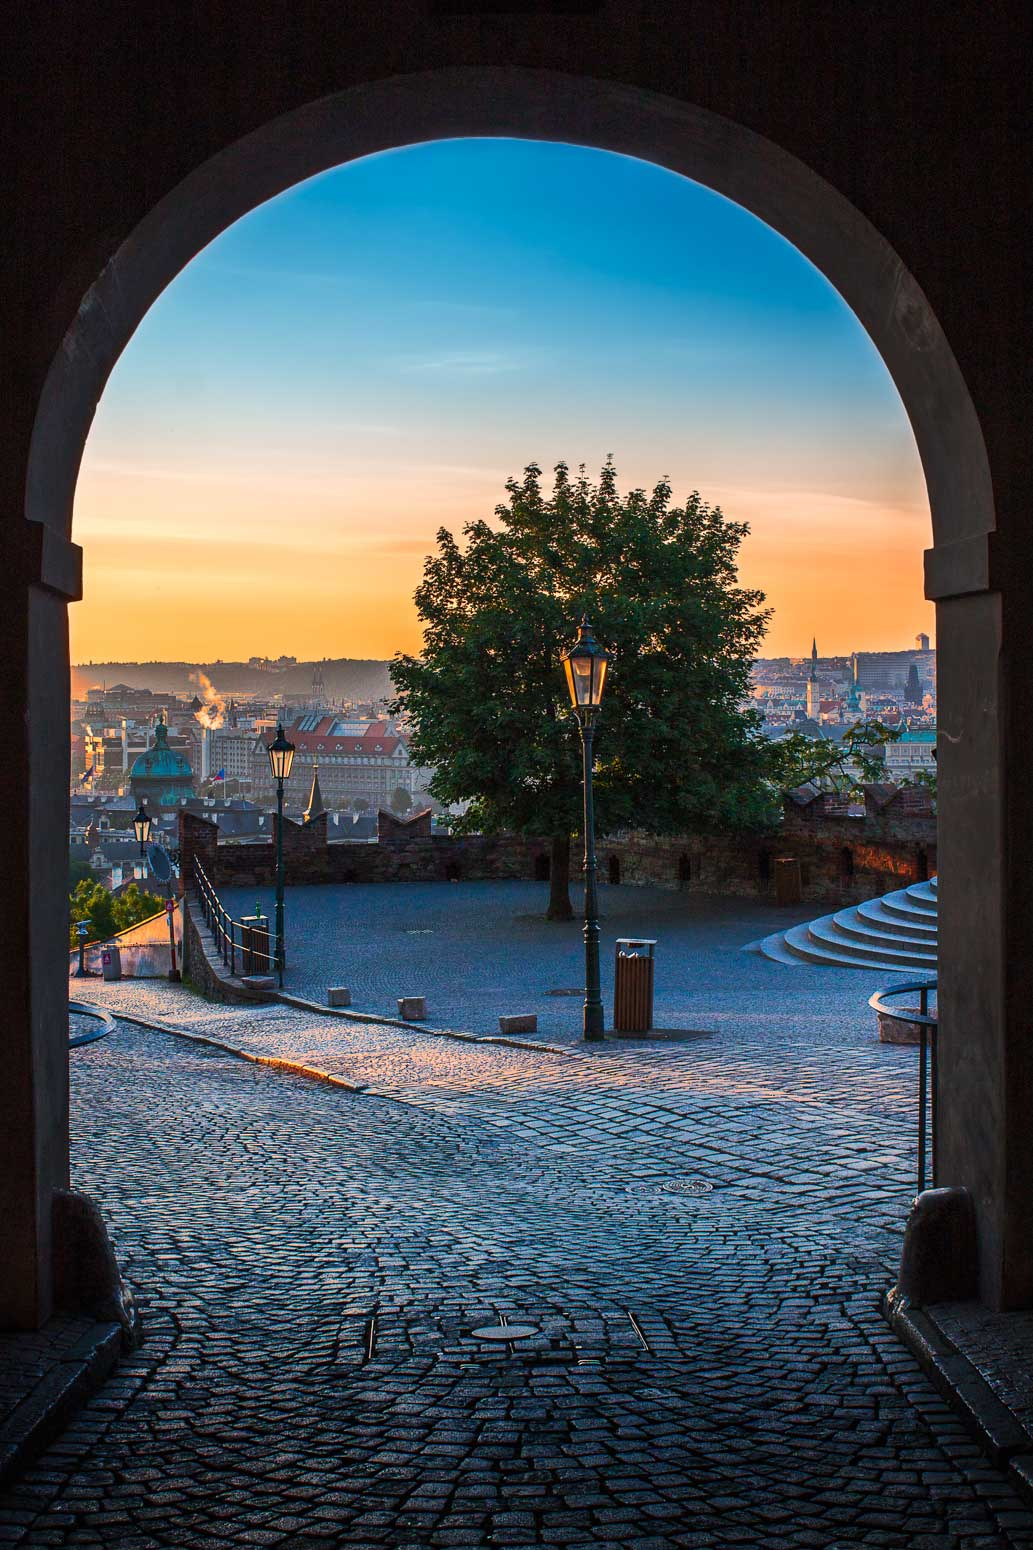 View from Prague Castle Gate, Czech Republic at sunrise in the early morning hours